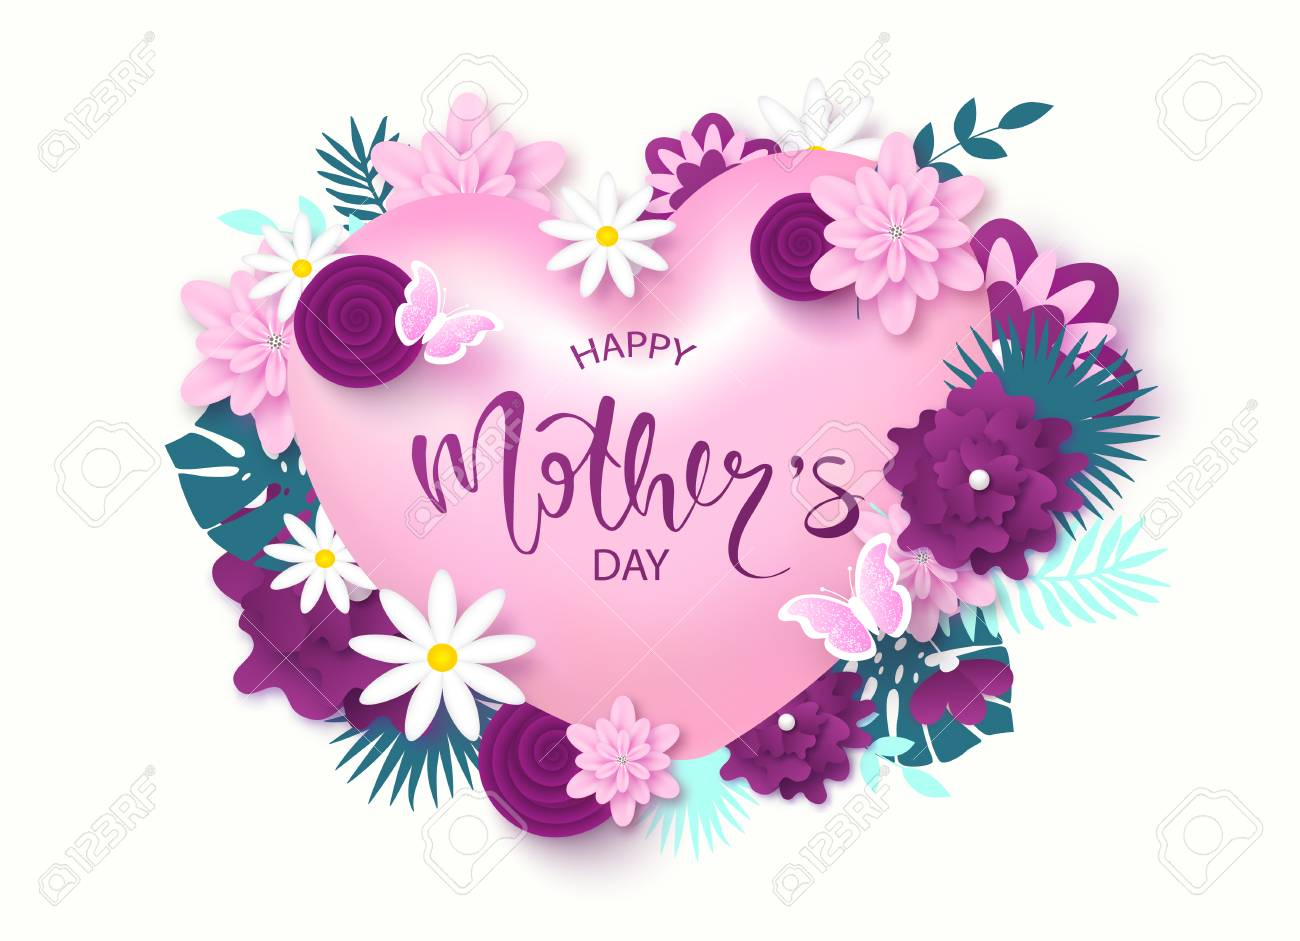 Happy mothers day greeting card design royalty free cliparts happy mothers day greeting card design stock vector 98997569 m4hsunfo